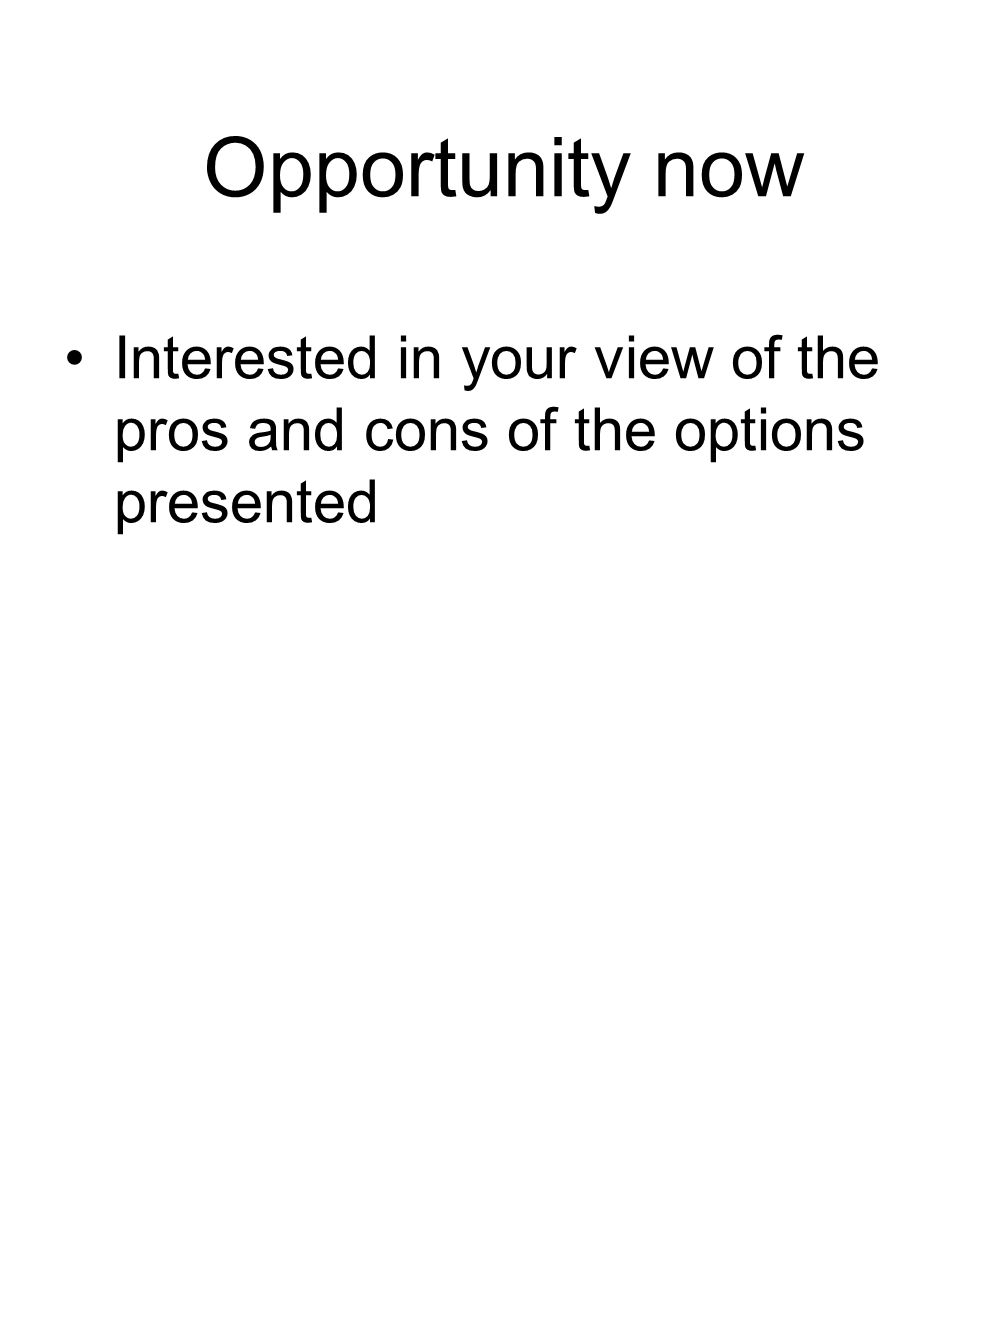 Opportunity now Interested in your view of the pros and cons of the options presented